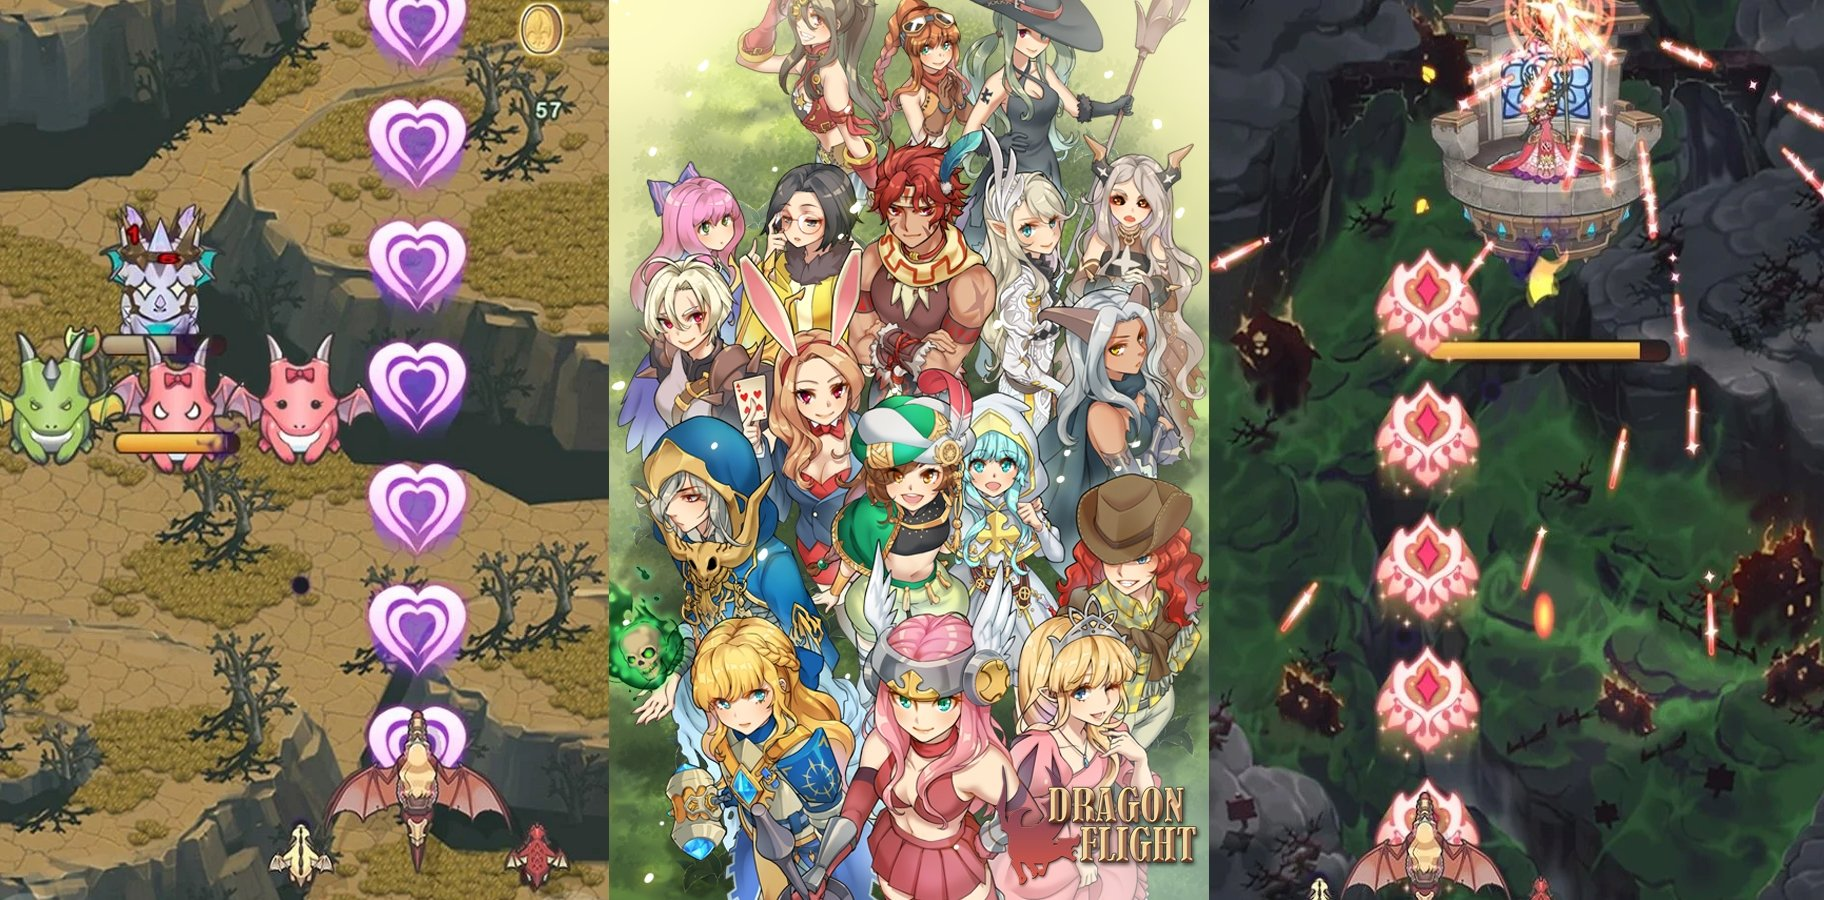 Line Games' Dragon Flight Mobile Game Now Available Again In North America